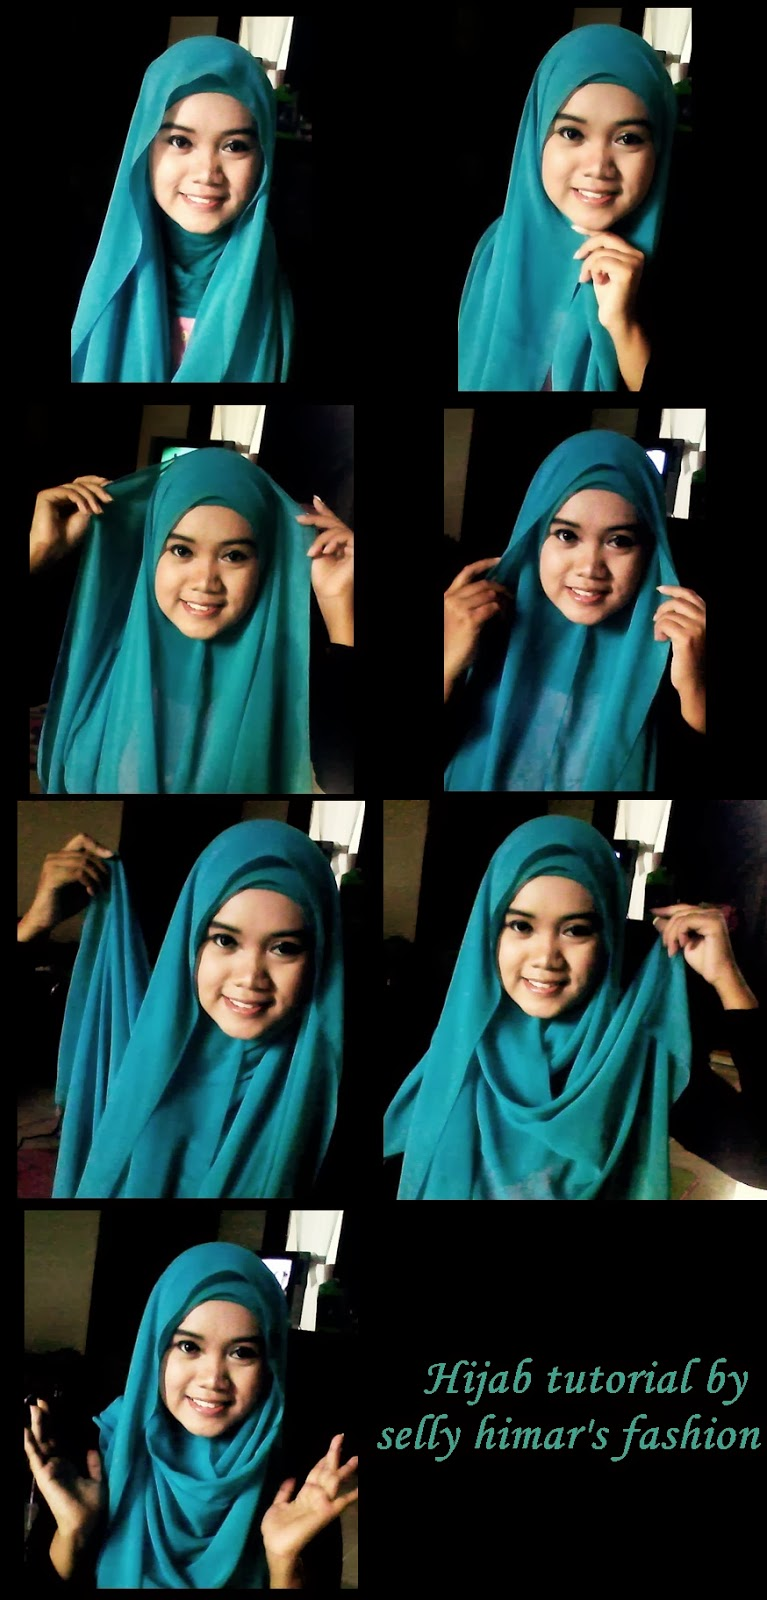 SELLY HERLAMBANG Tutorial Hijab Style